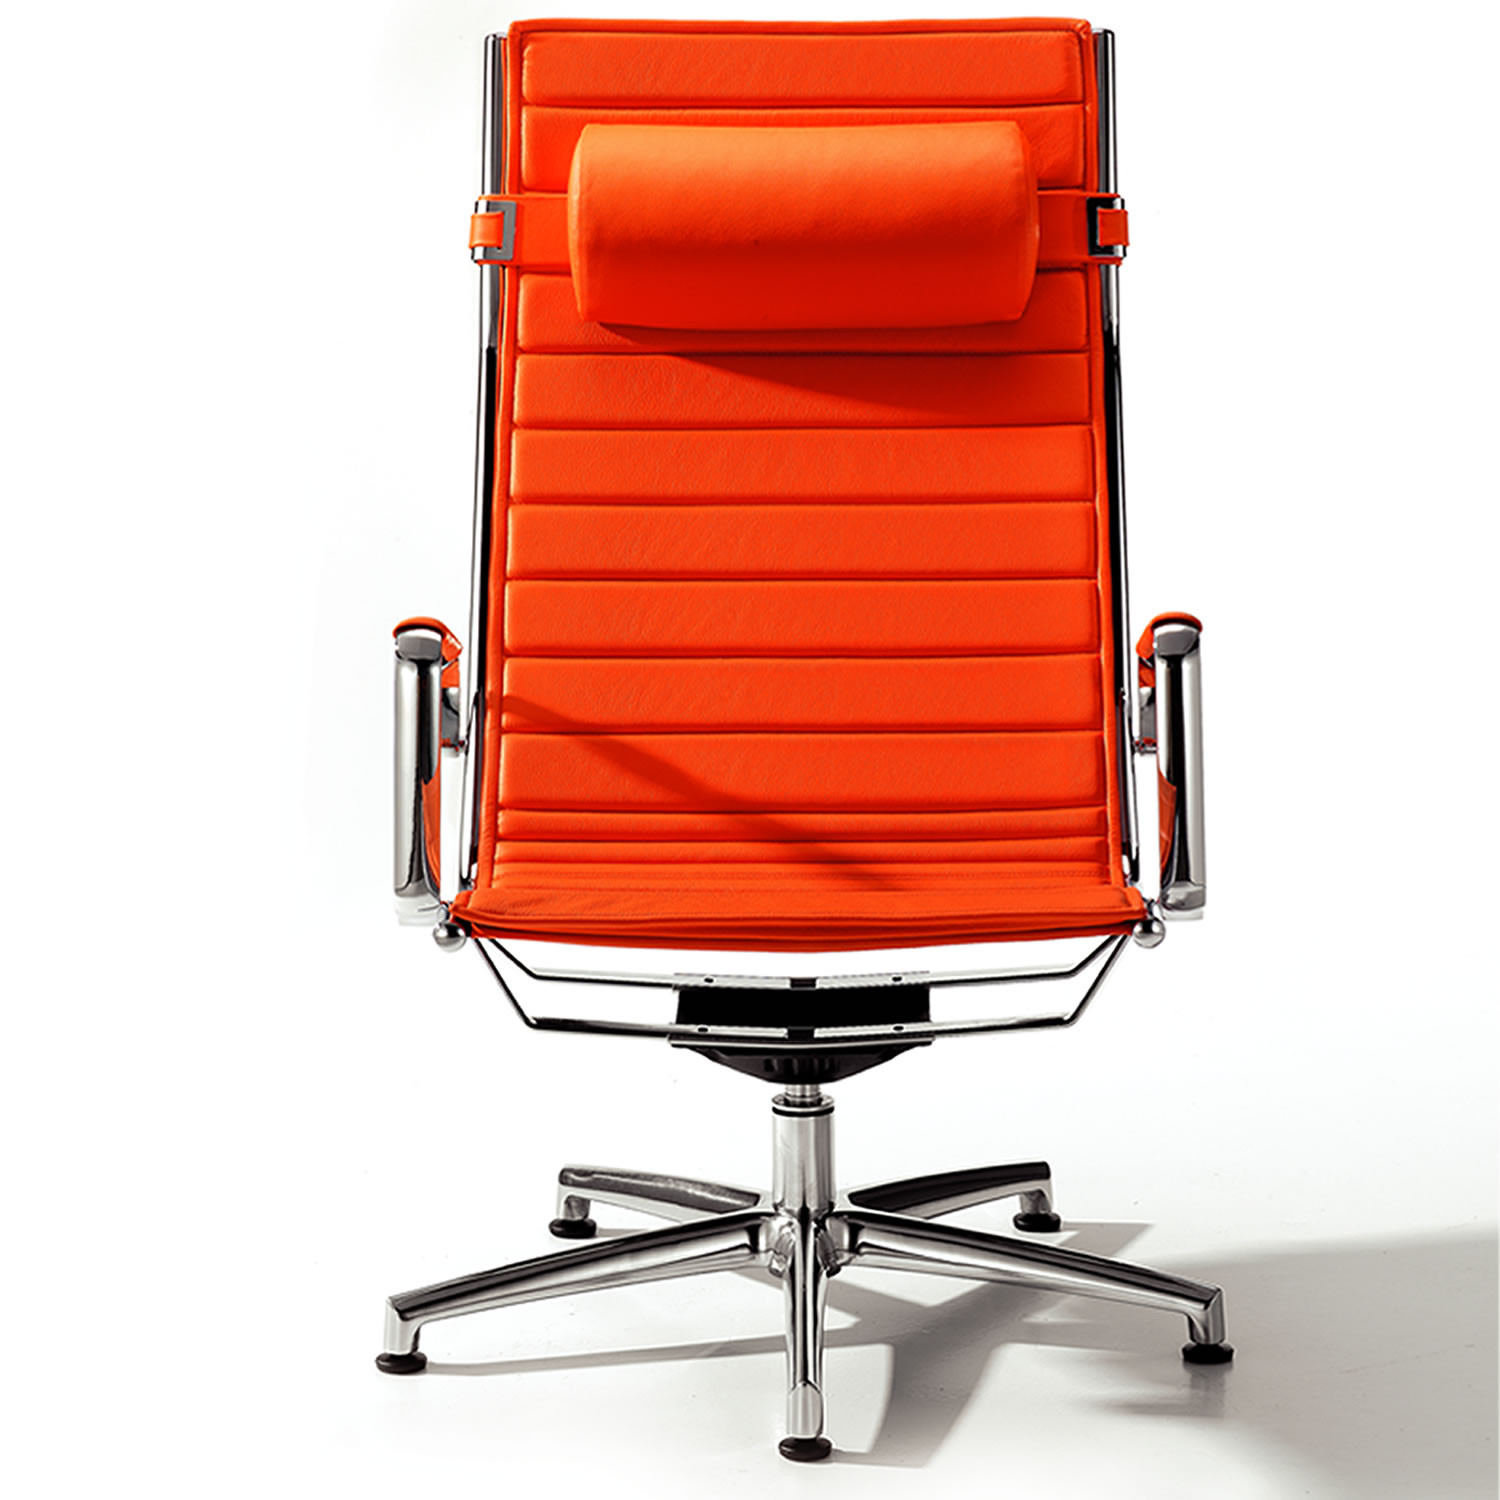 Light Boardroom Armchair with headrest